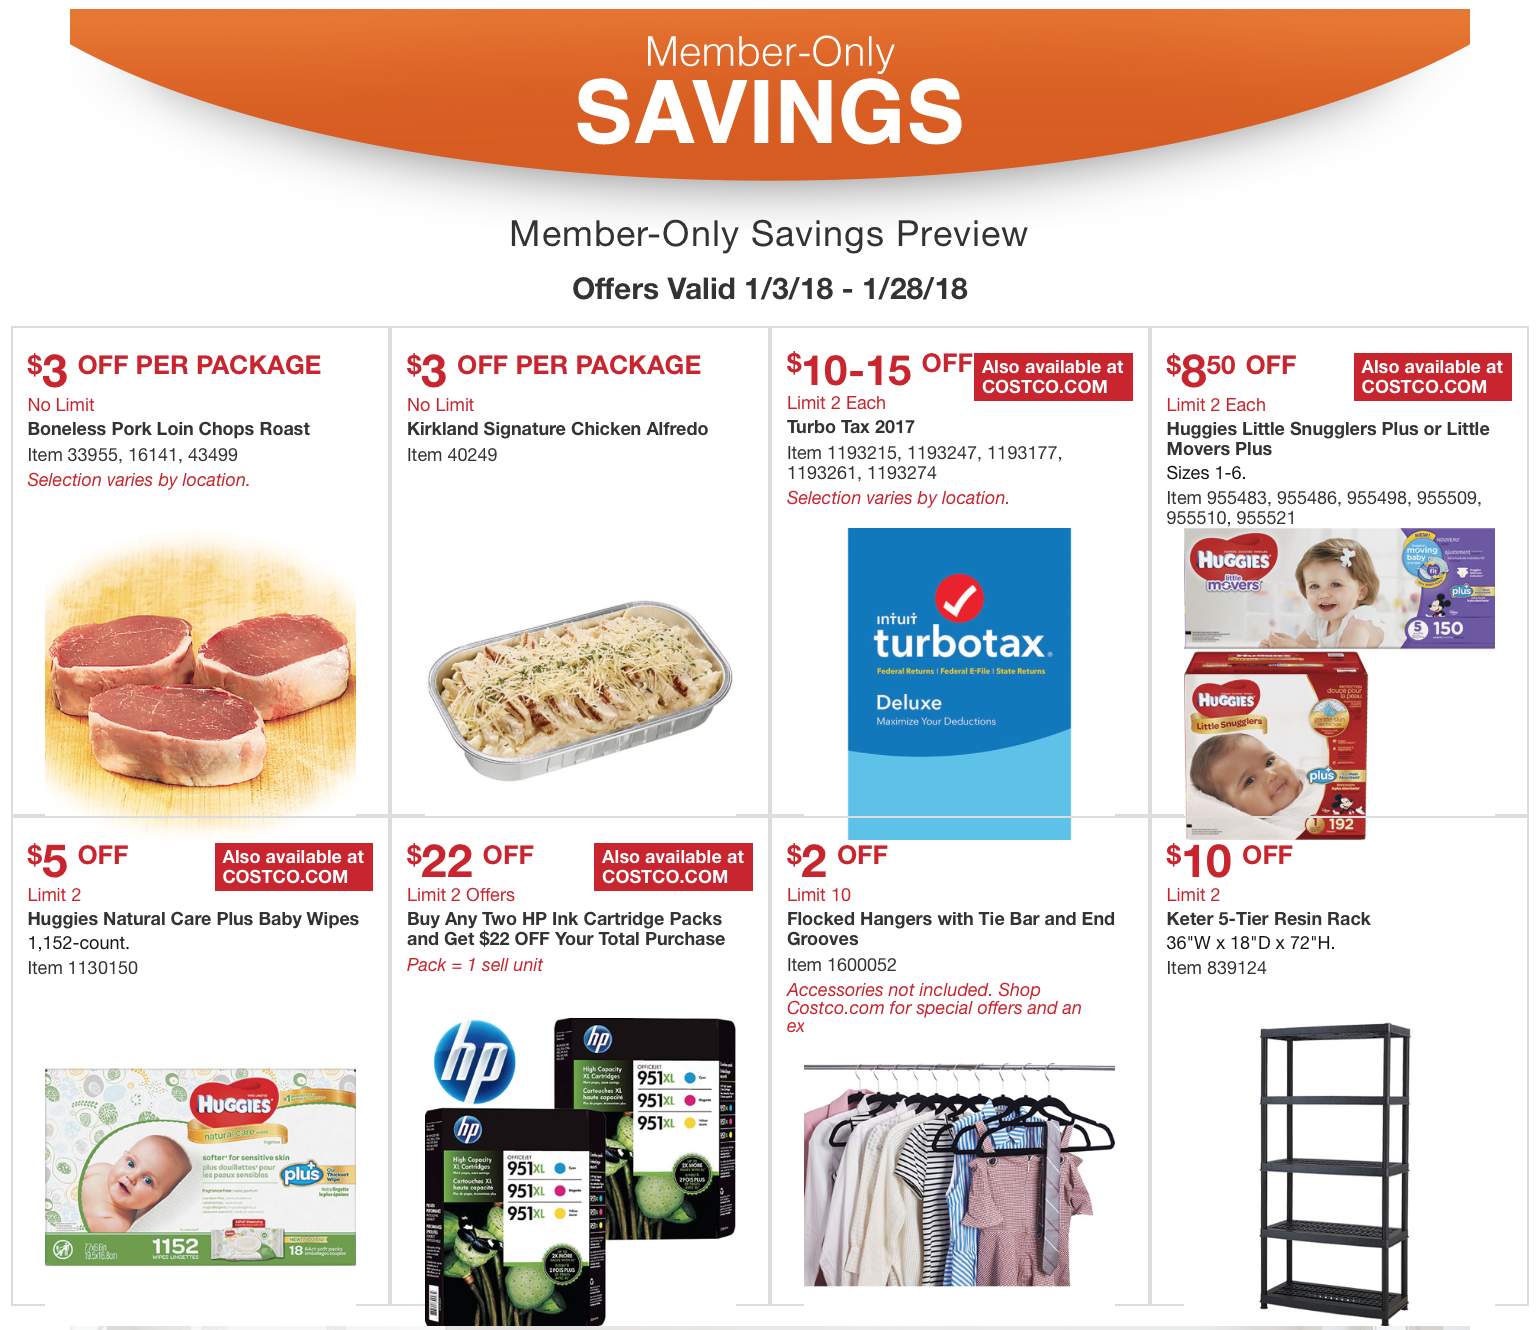 Costco Member Savings